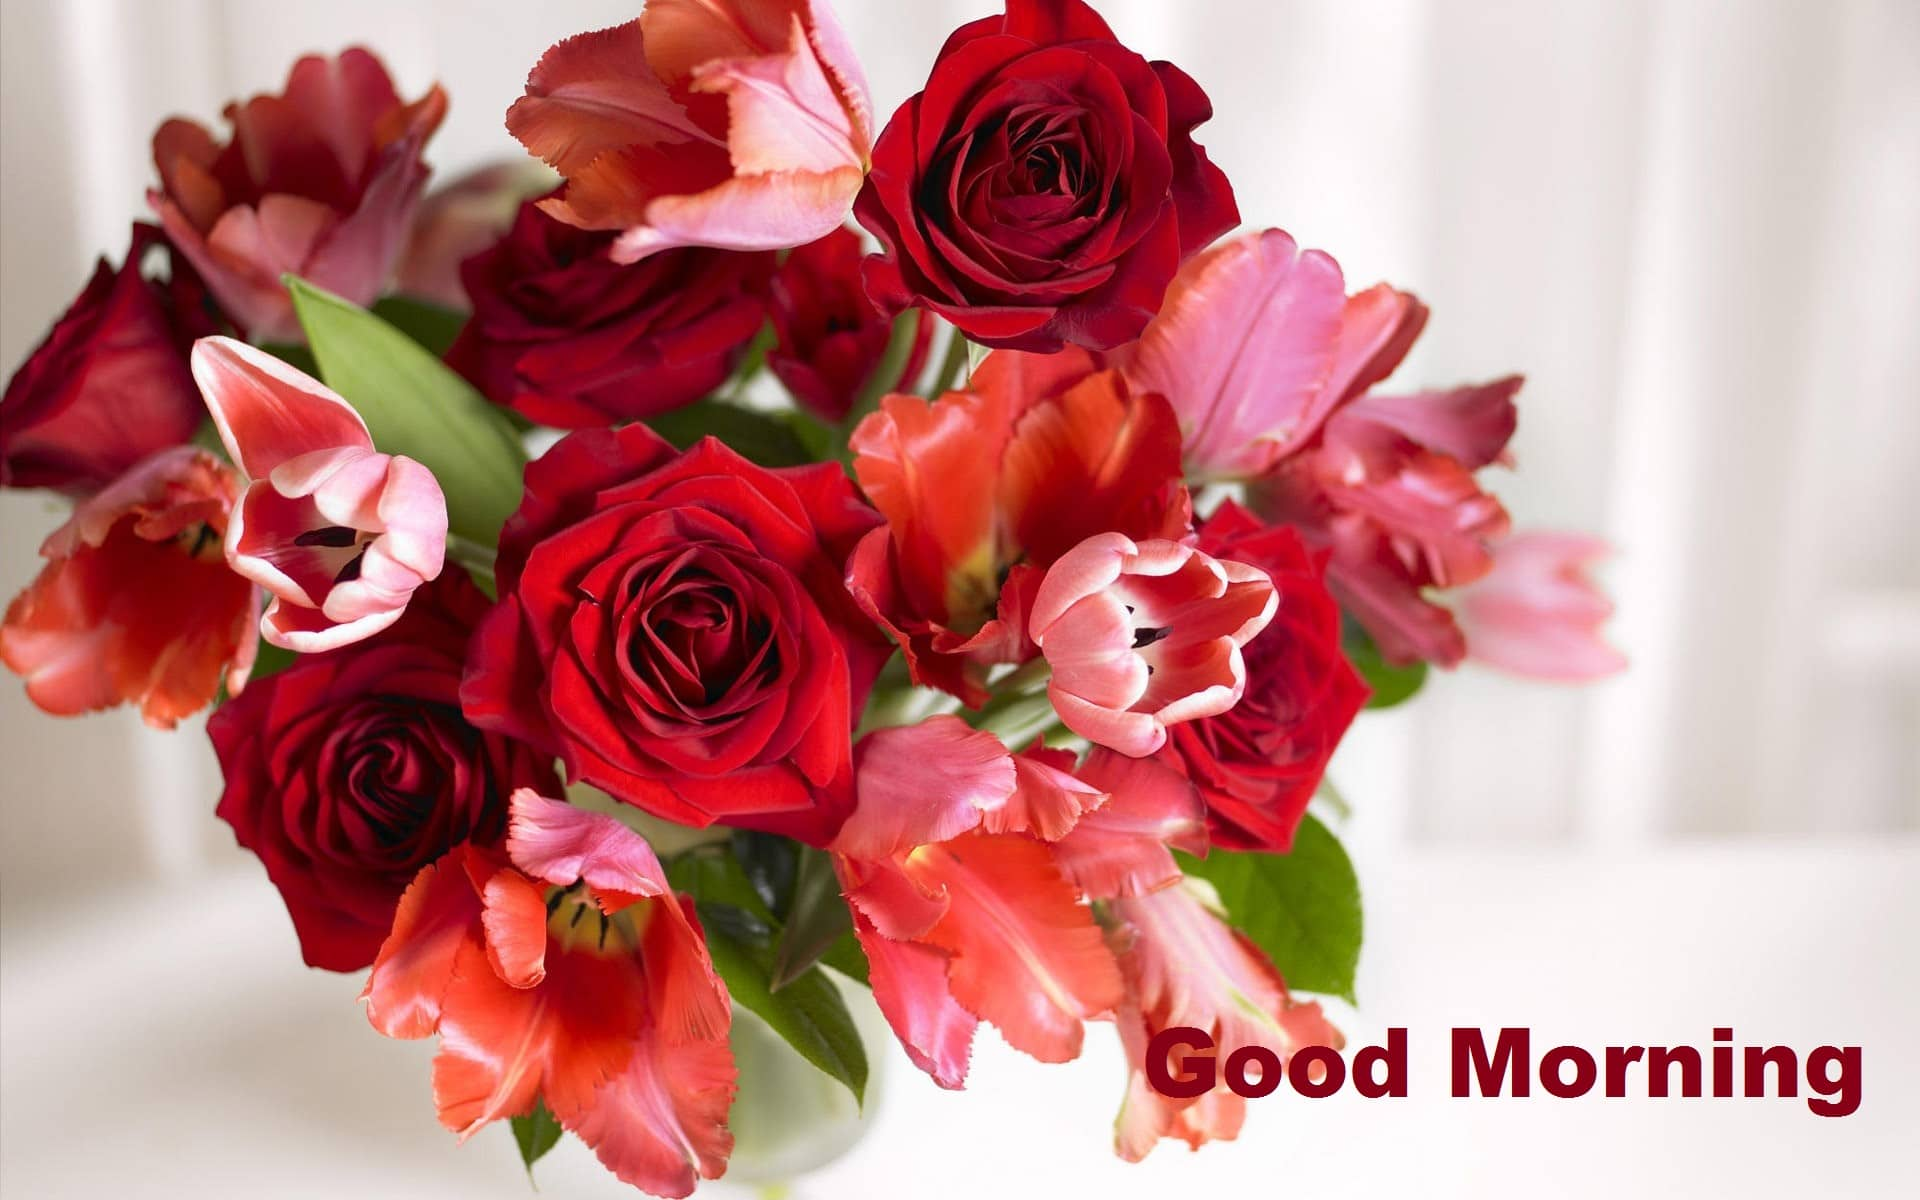 Best Good Morning with Rose Flowers